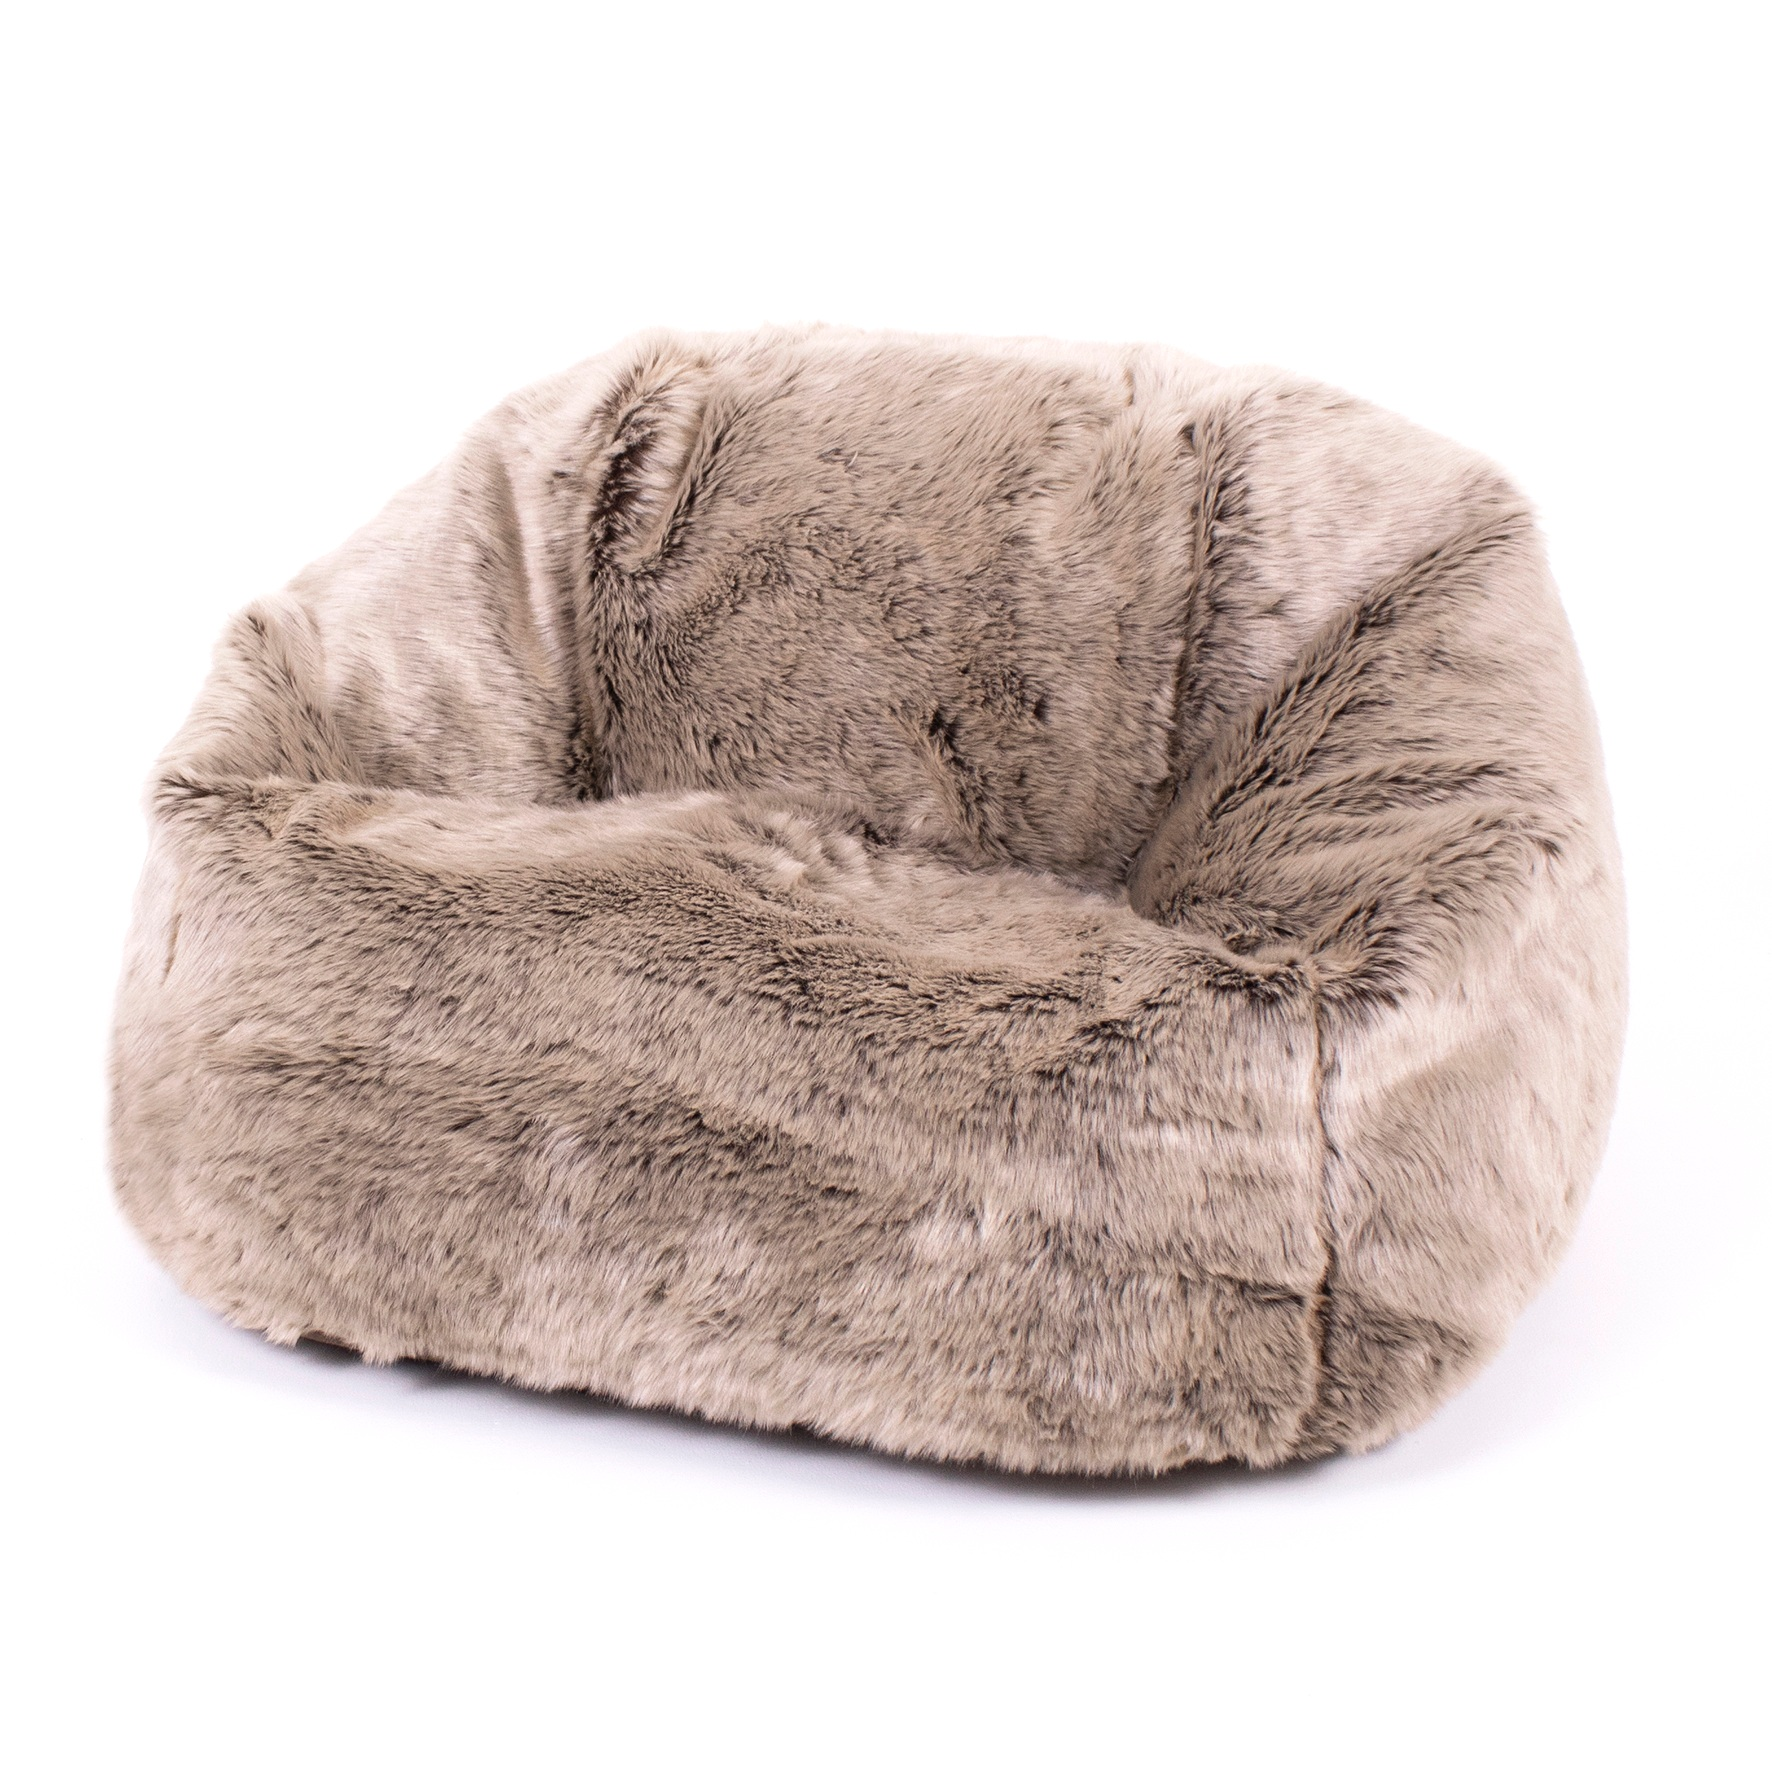 Eden-Primary-Bean-Bag-Faux-Fur-1-300dpi.jpg